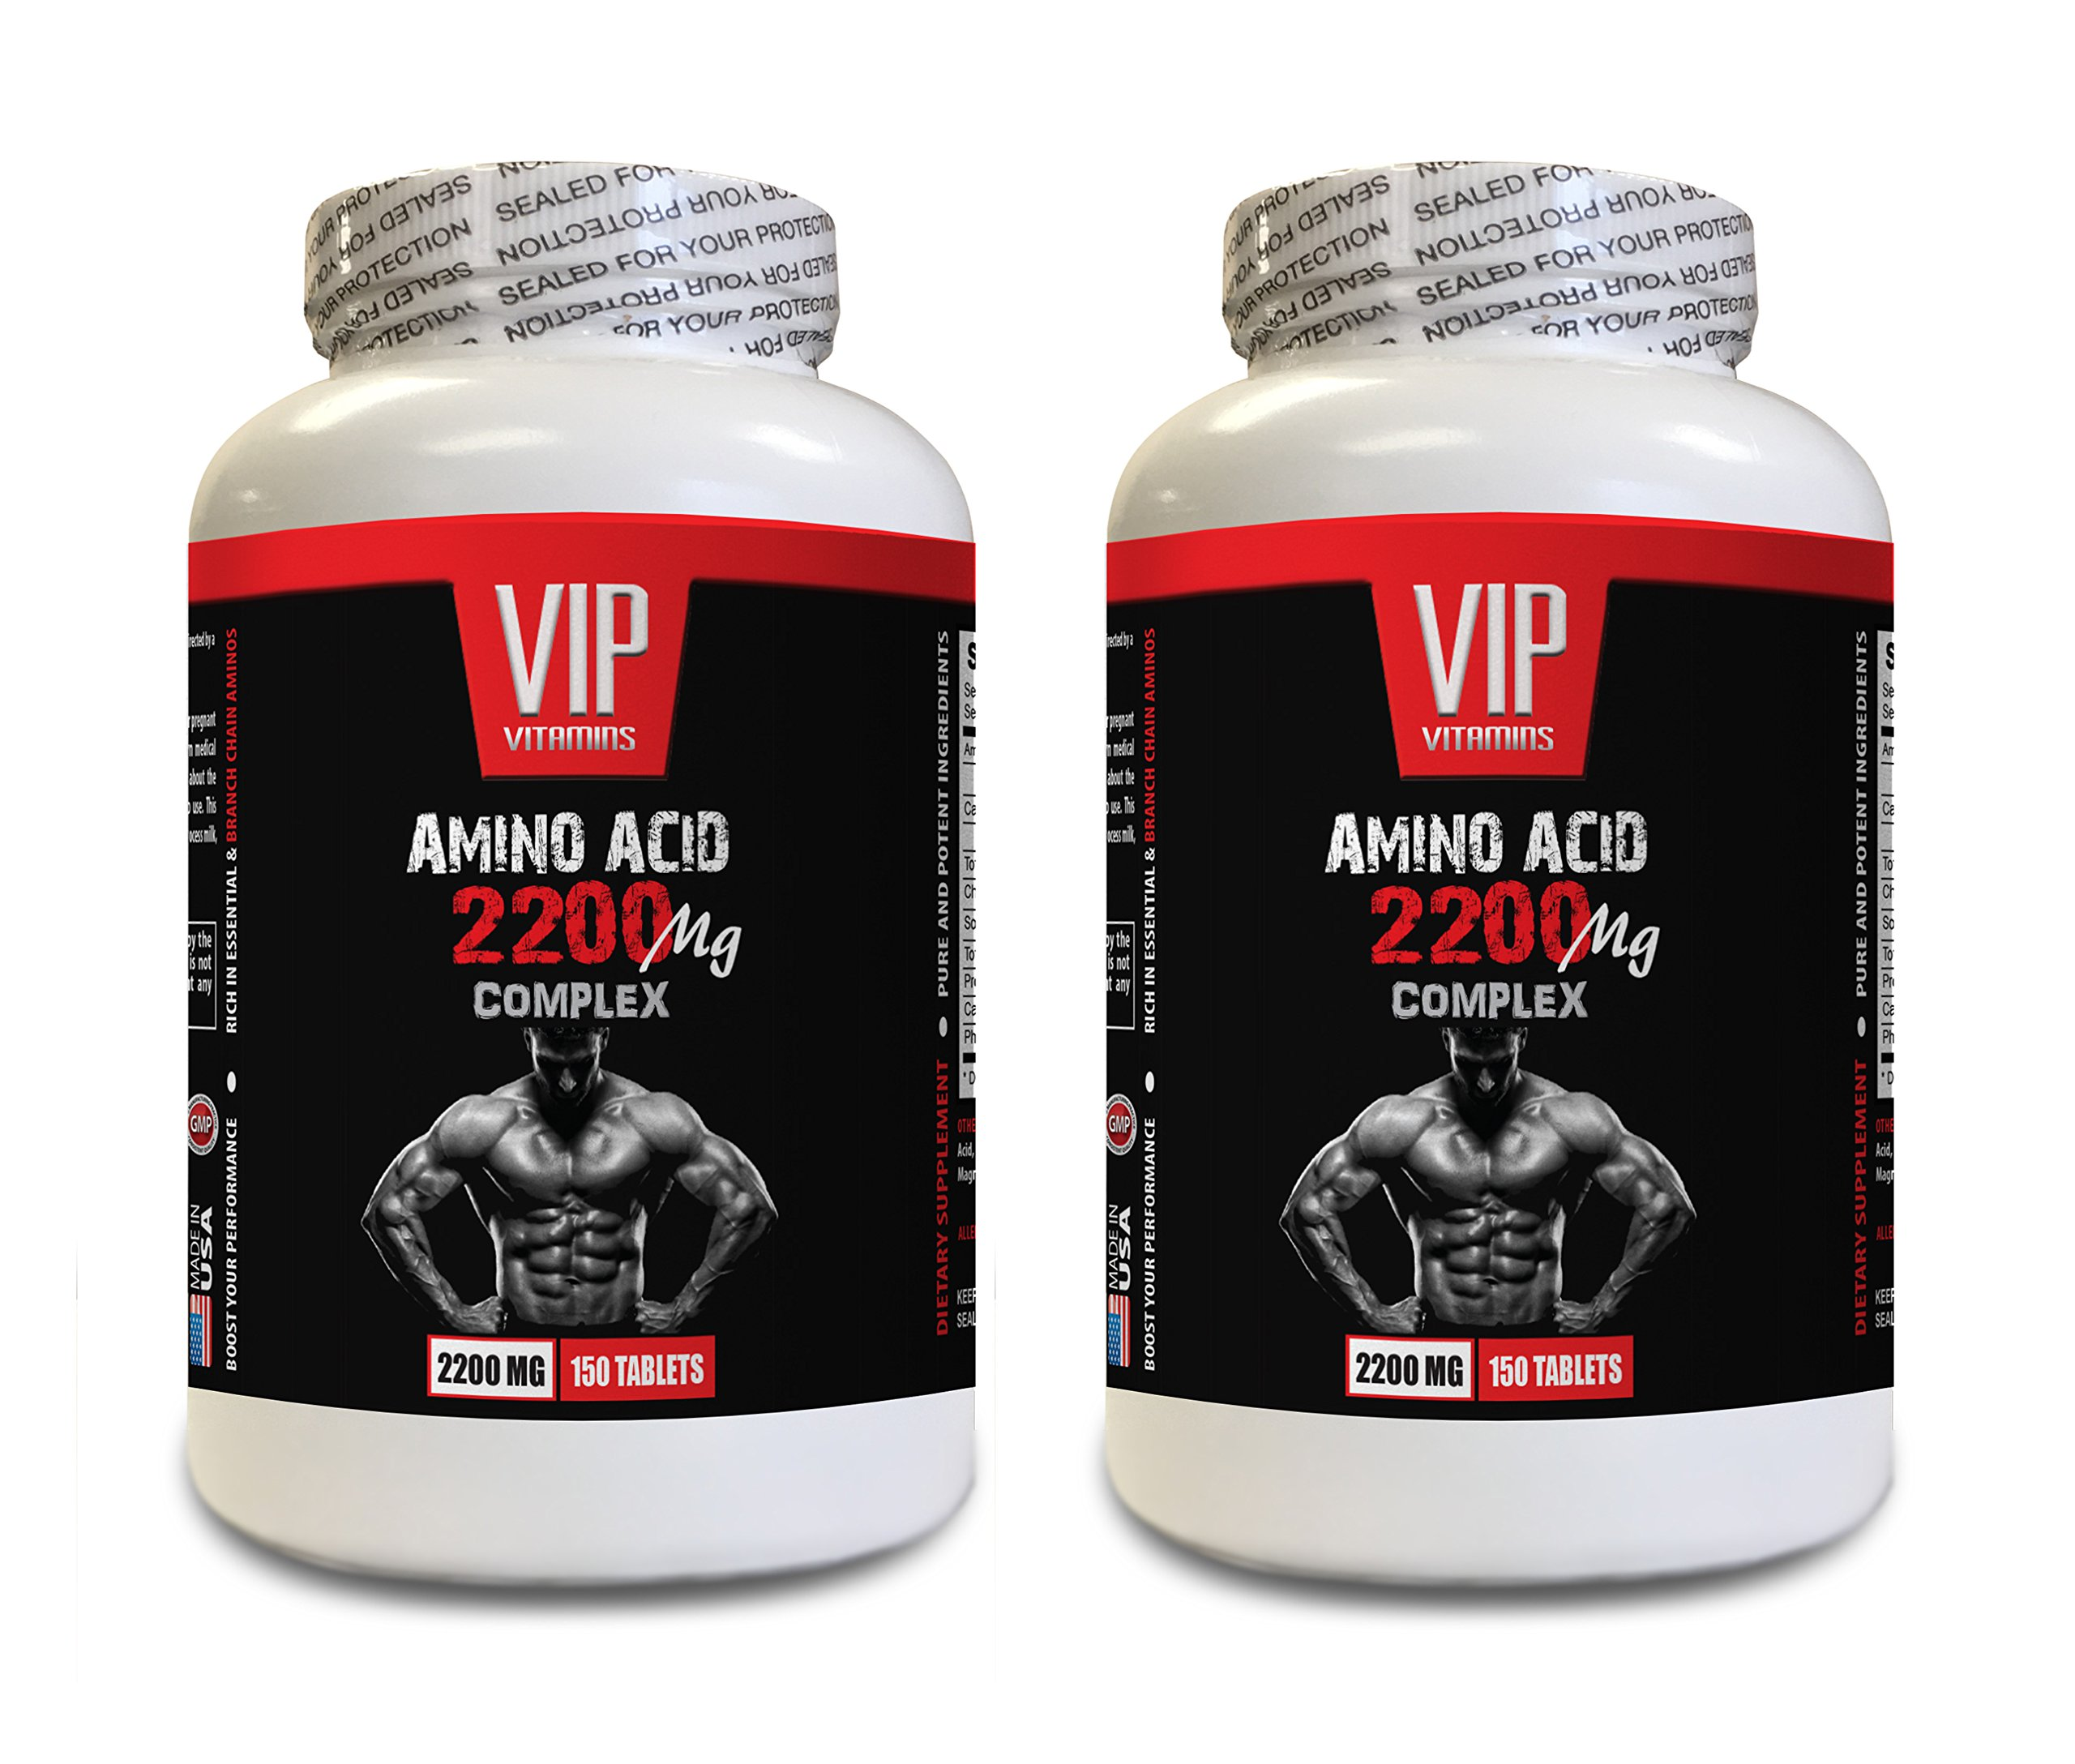 pre workout with l carnitine - AMINO ACIDS COMPLEX 2200 MG - amino acids muscle building - 2 Bottles 300 Tablets